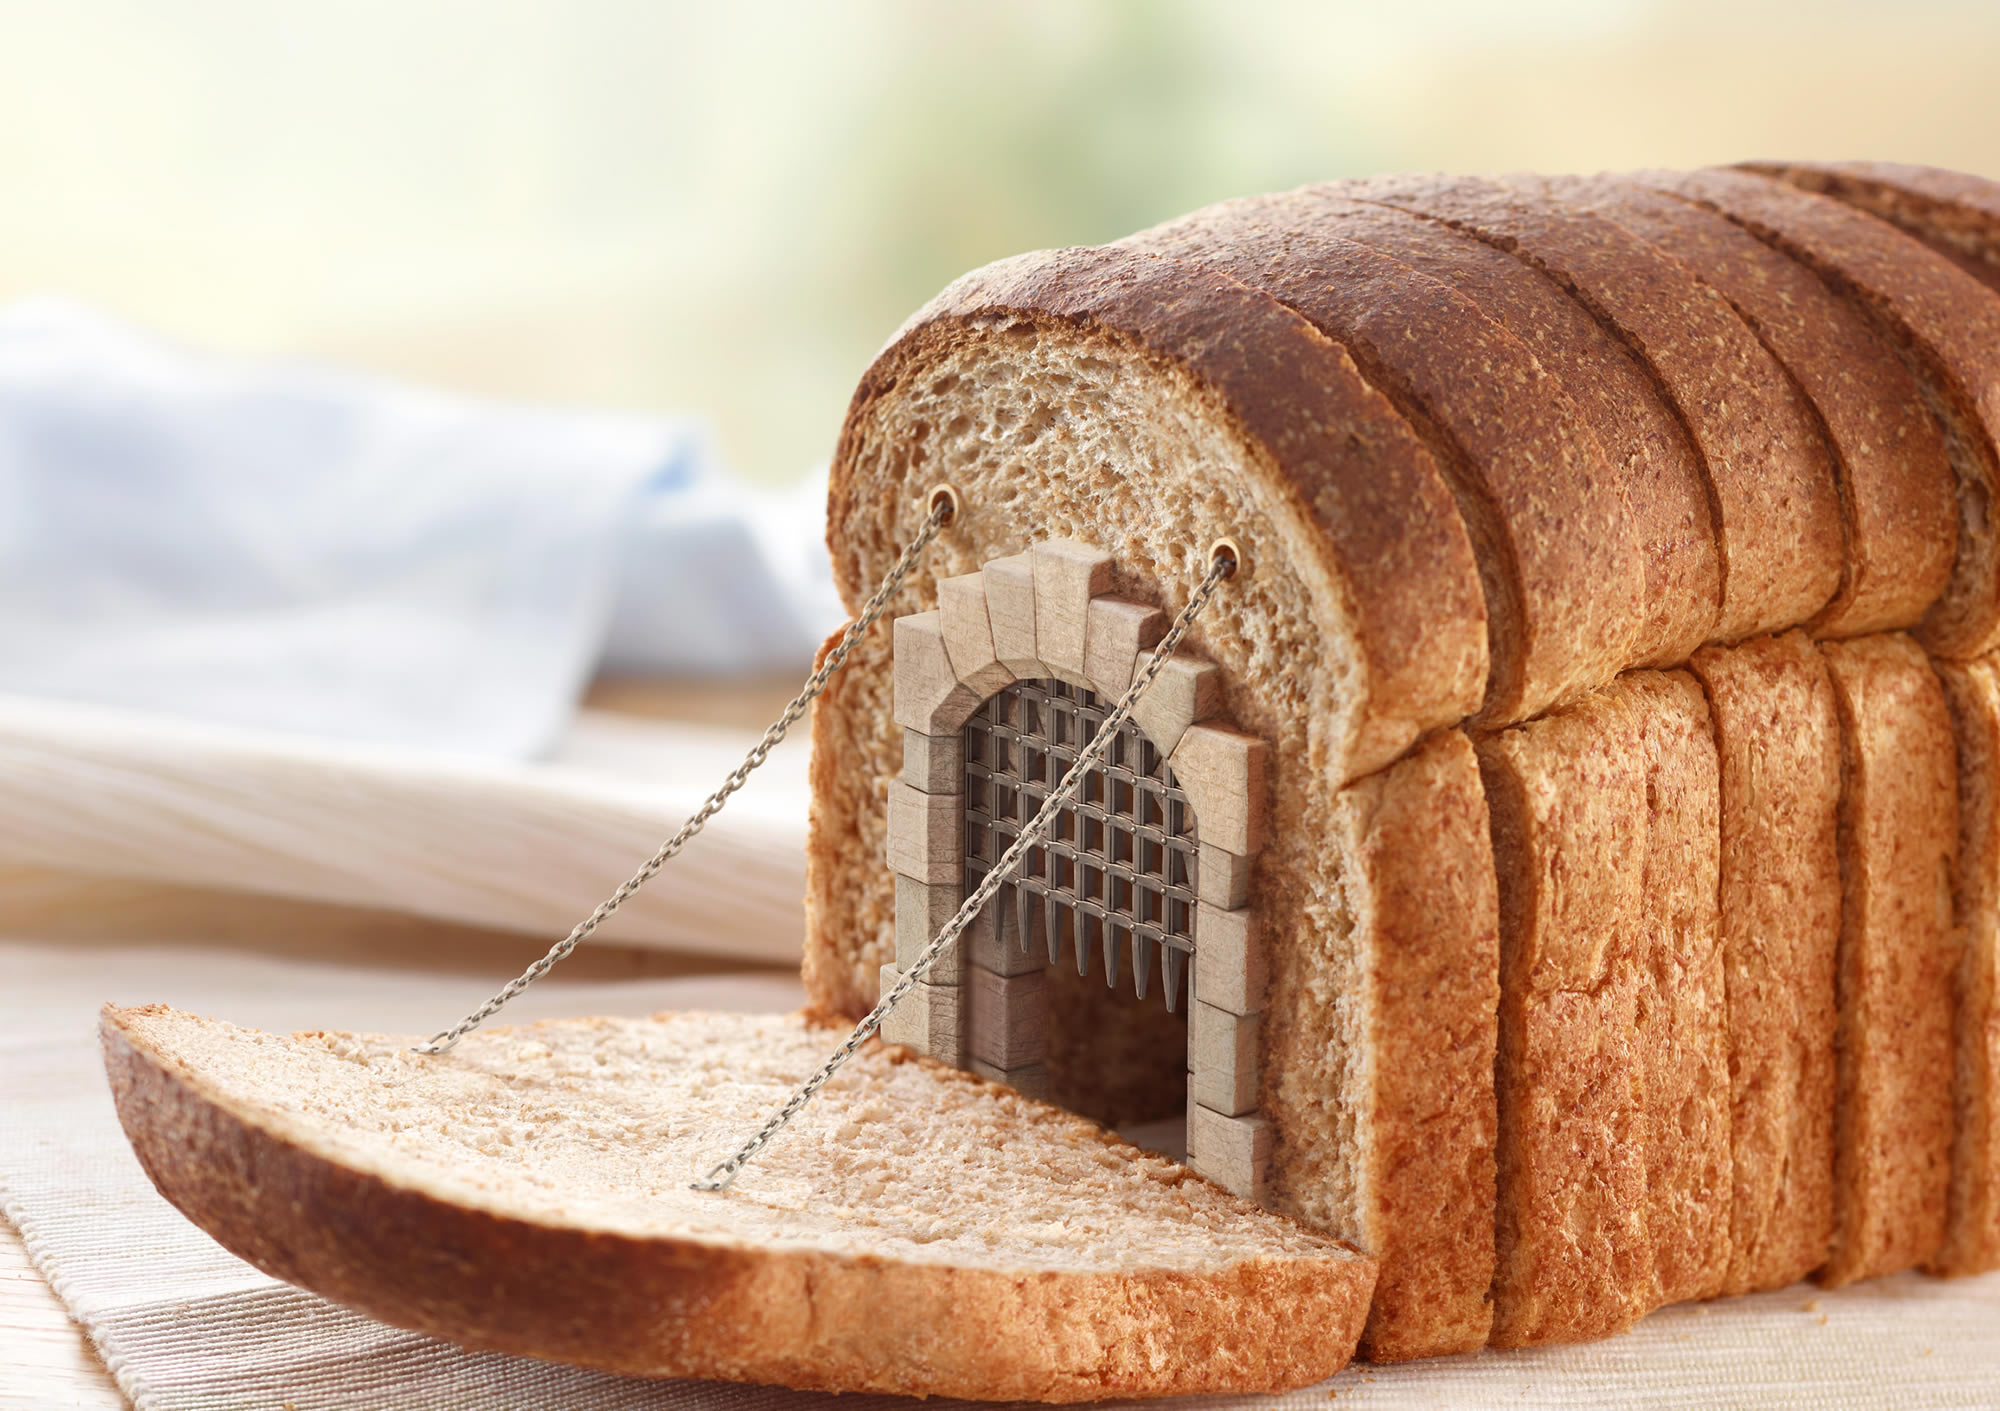 castle gate inside loaf of bread, dupont